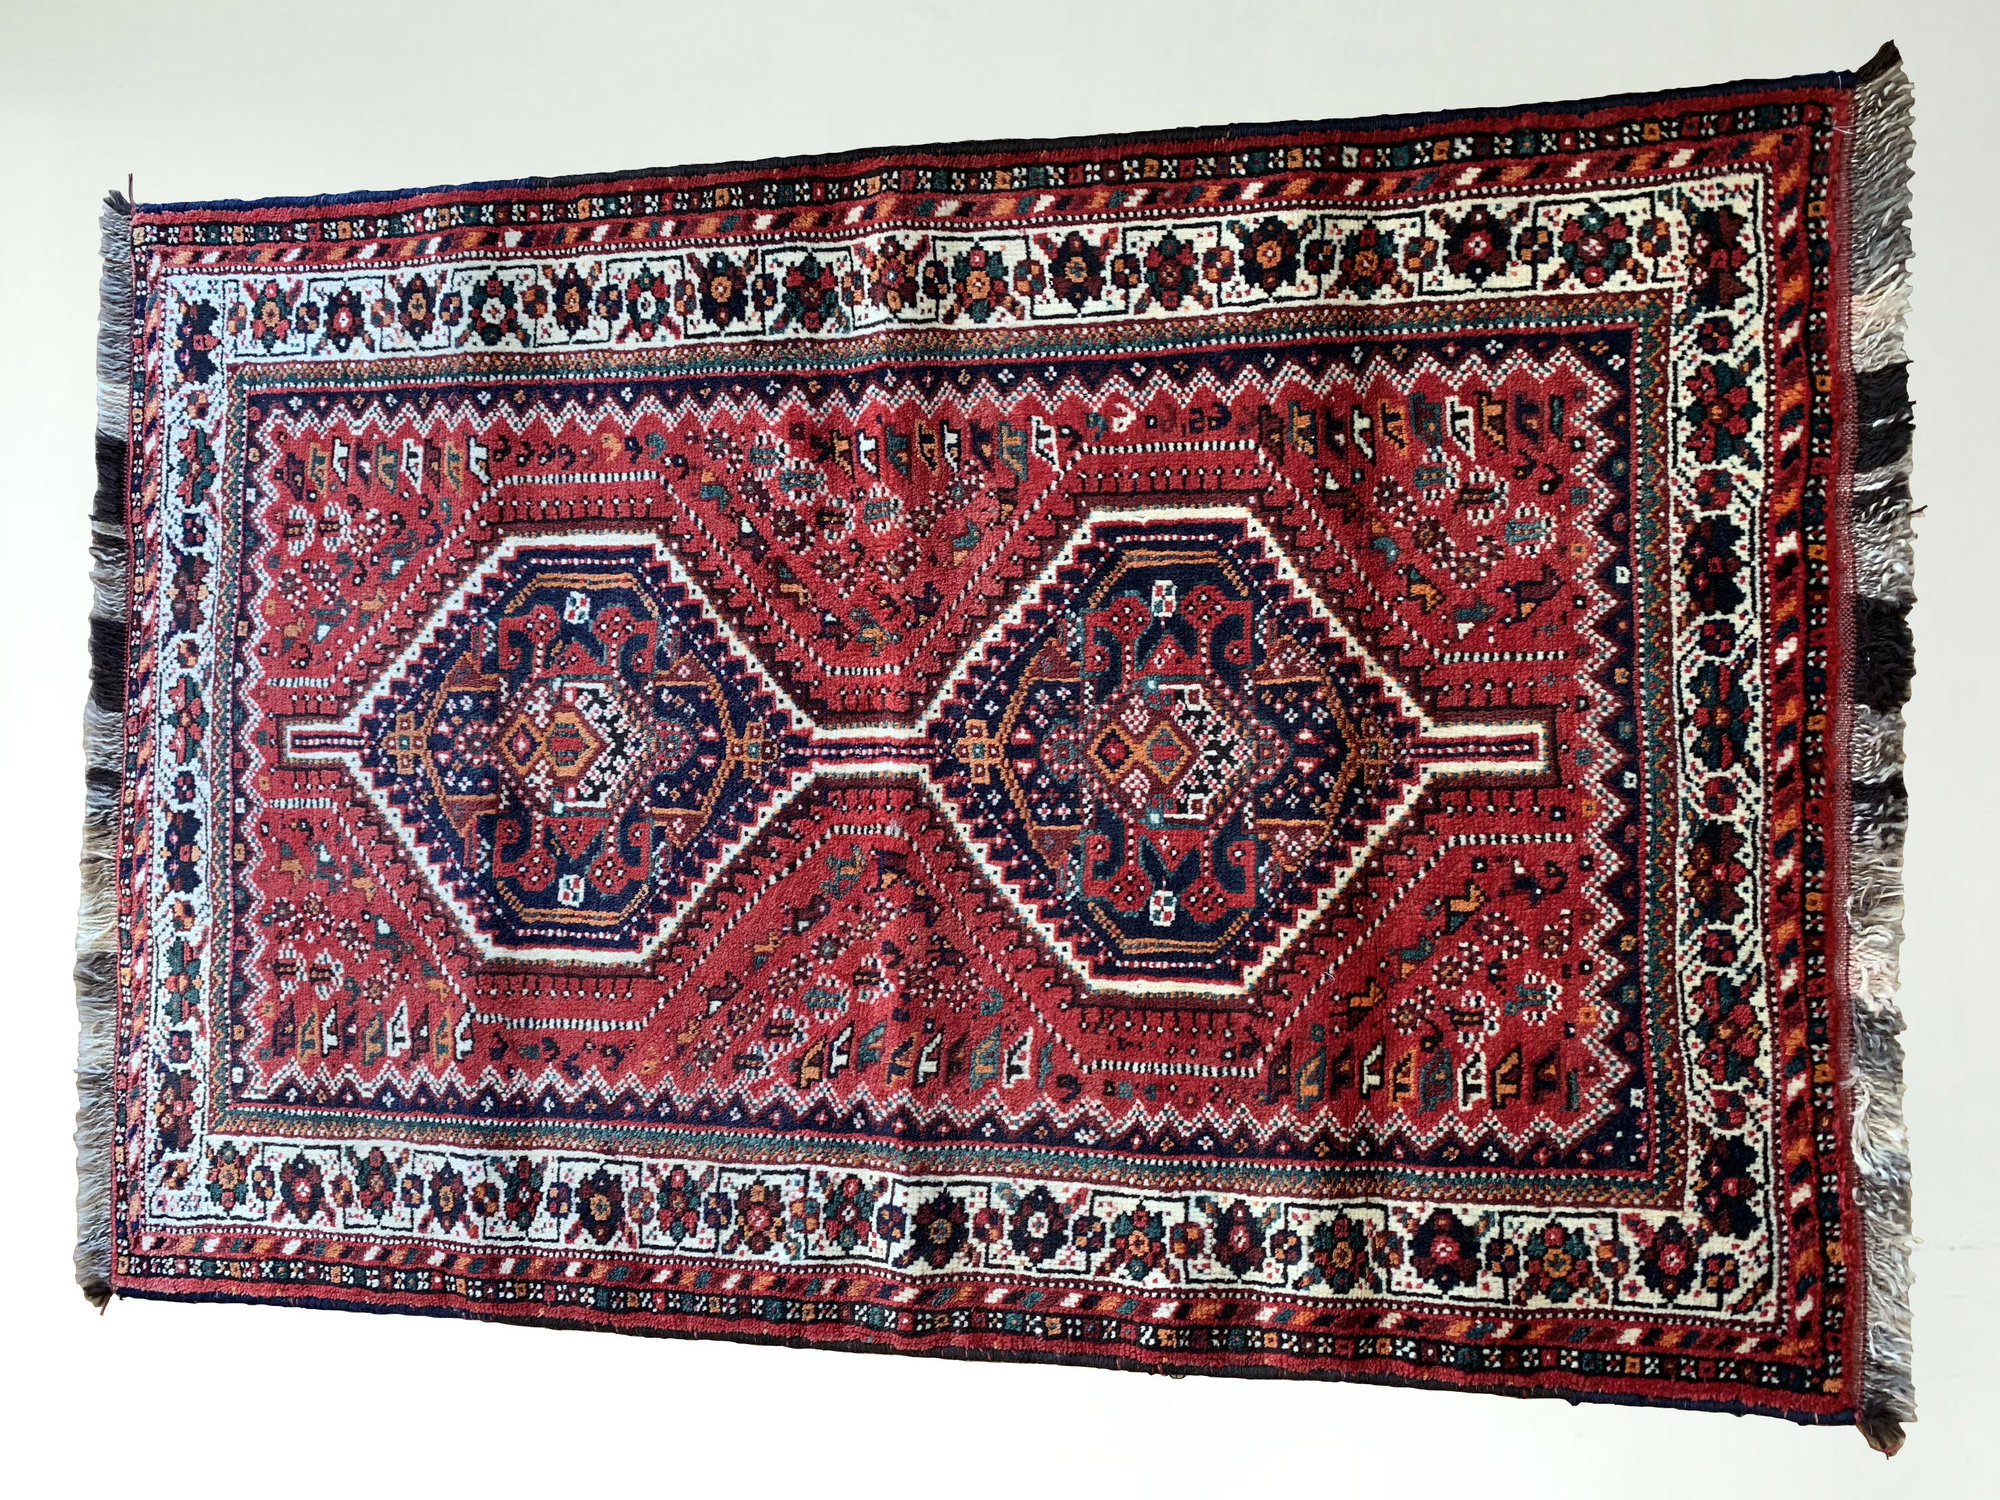 Shiraz, Rug, Persian Rug, Carpet, Persian Carpet, Gift Guide, Christmas